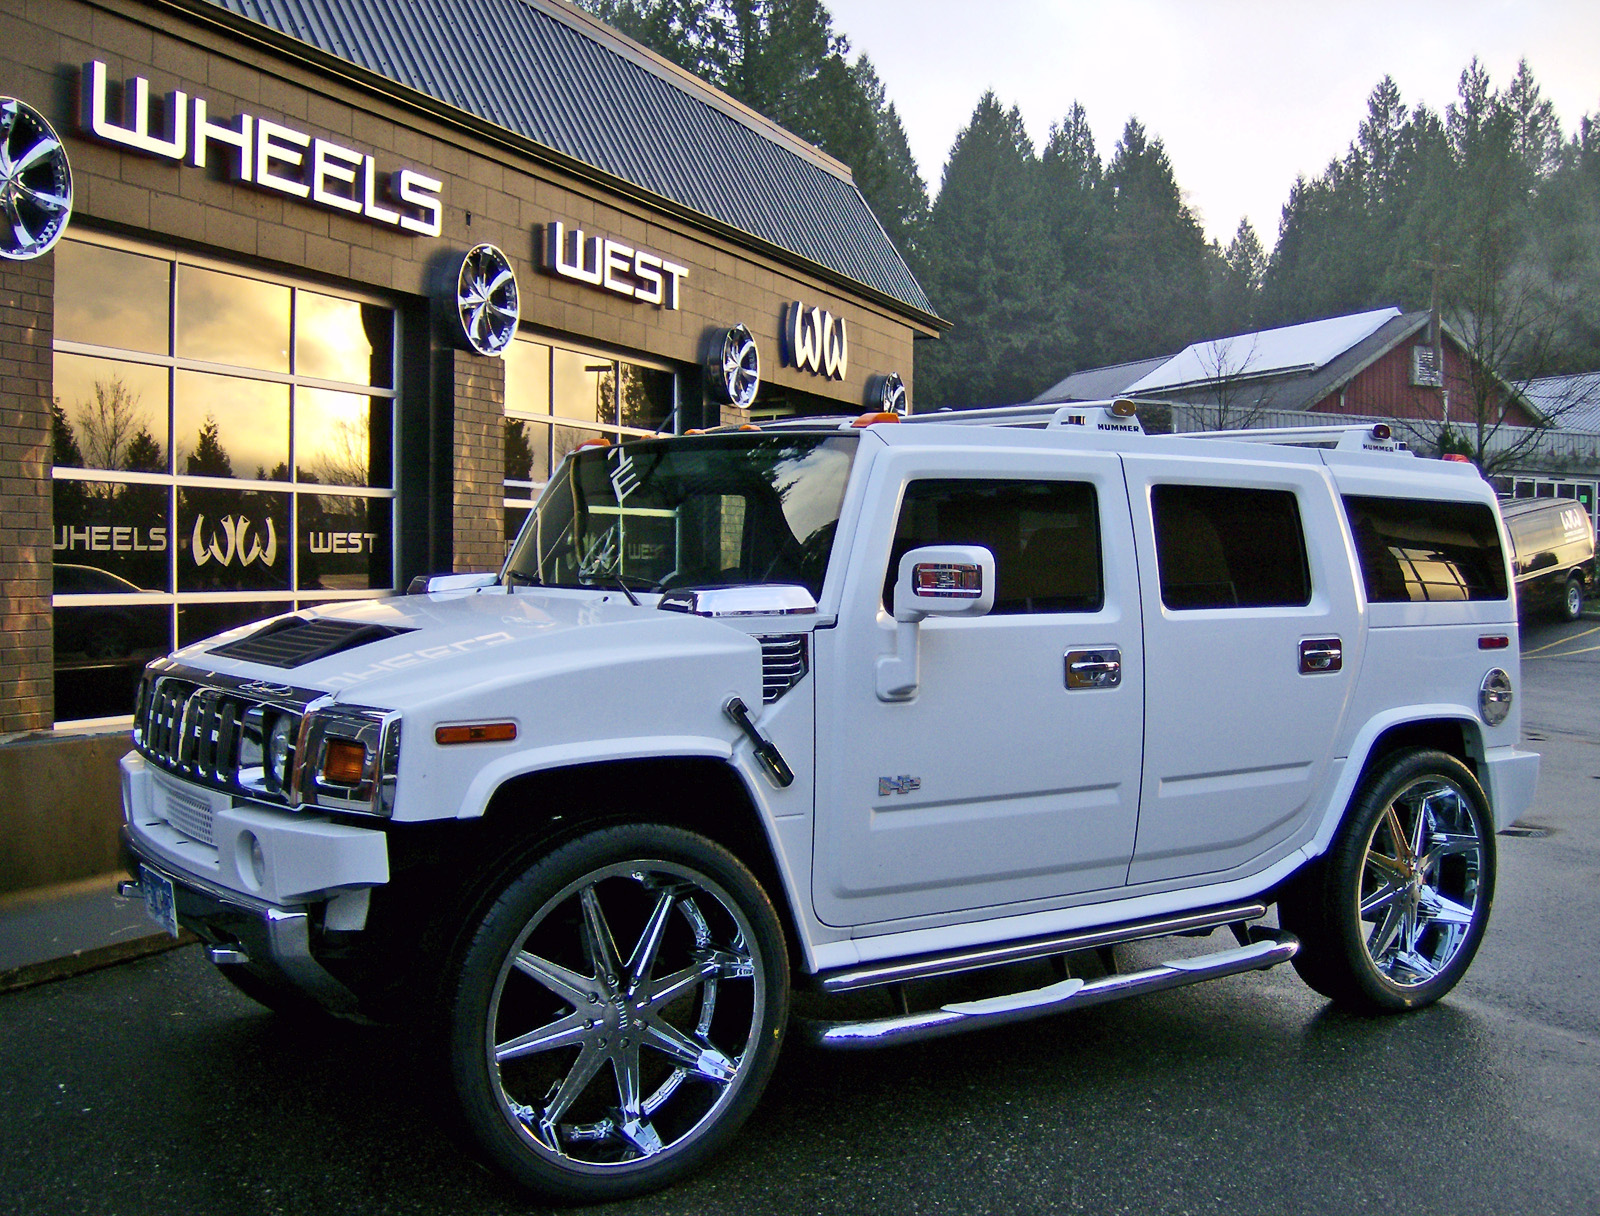 Sports And Celebrities: Super Car hummer H1 H2 H3 H3t